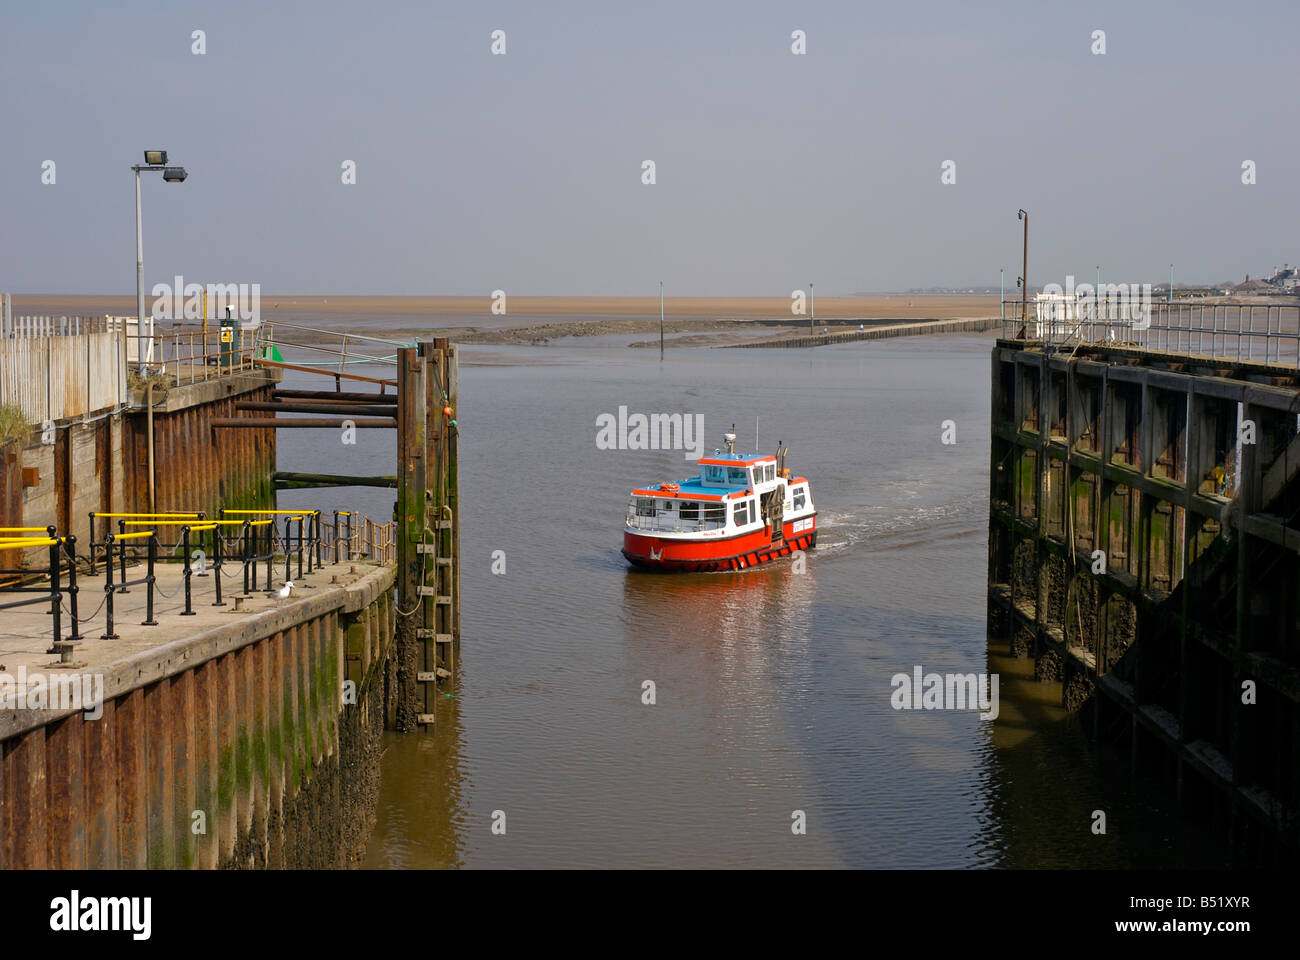 The ferry that plies between Fletwood and Knott End, Wyre estary, Lancashire, England UK - Stock Image